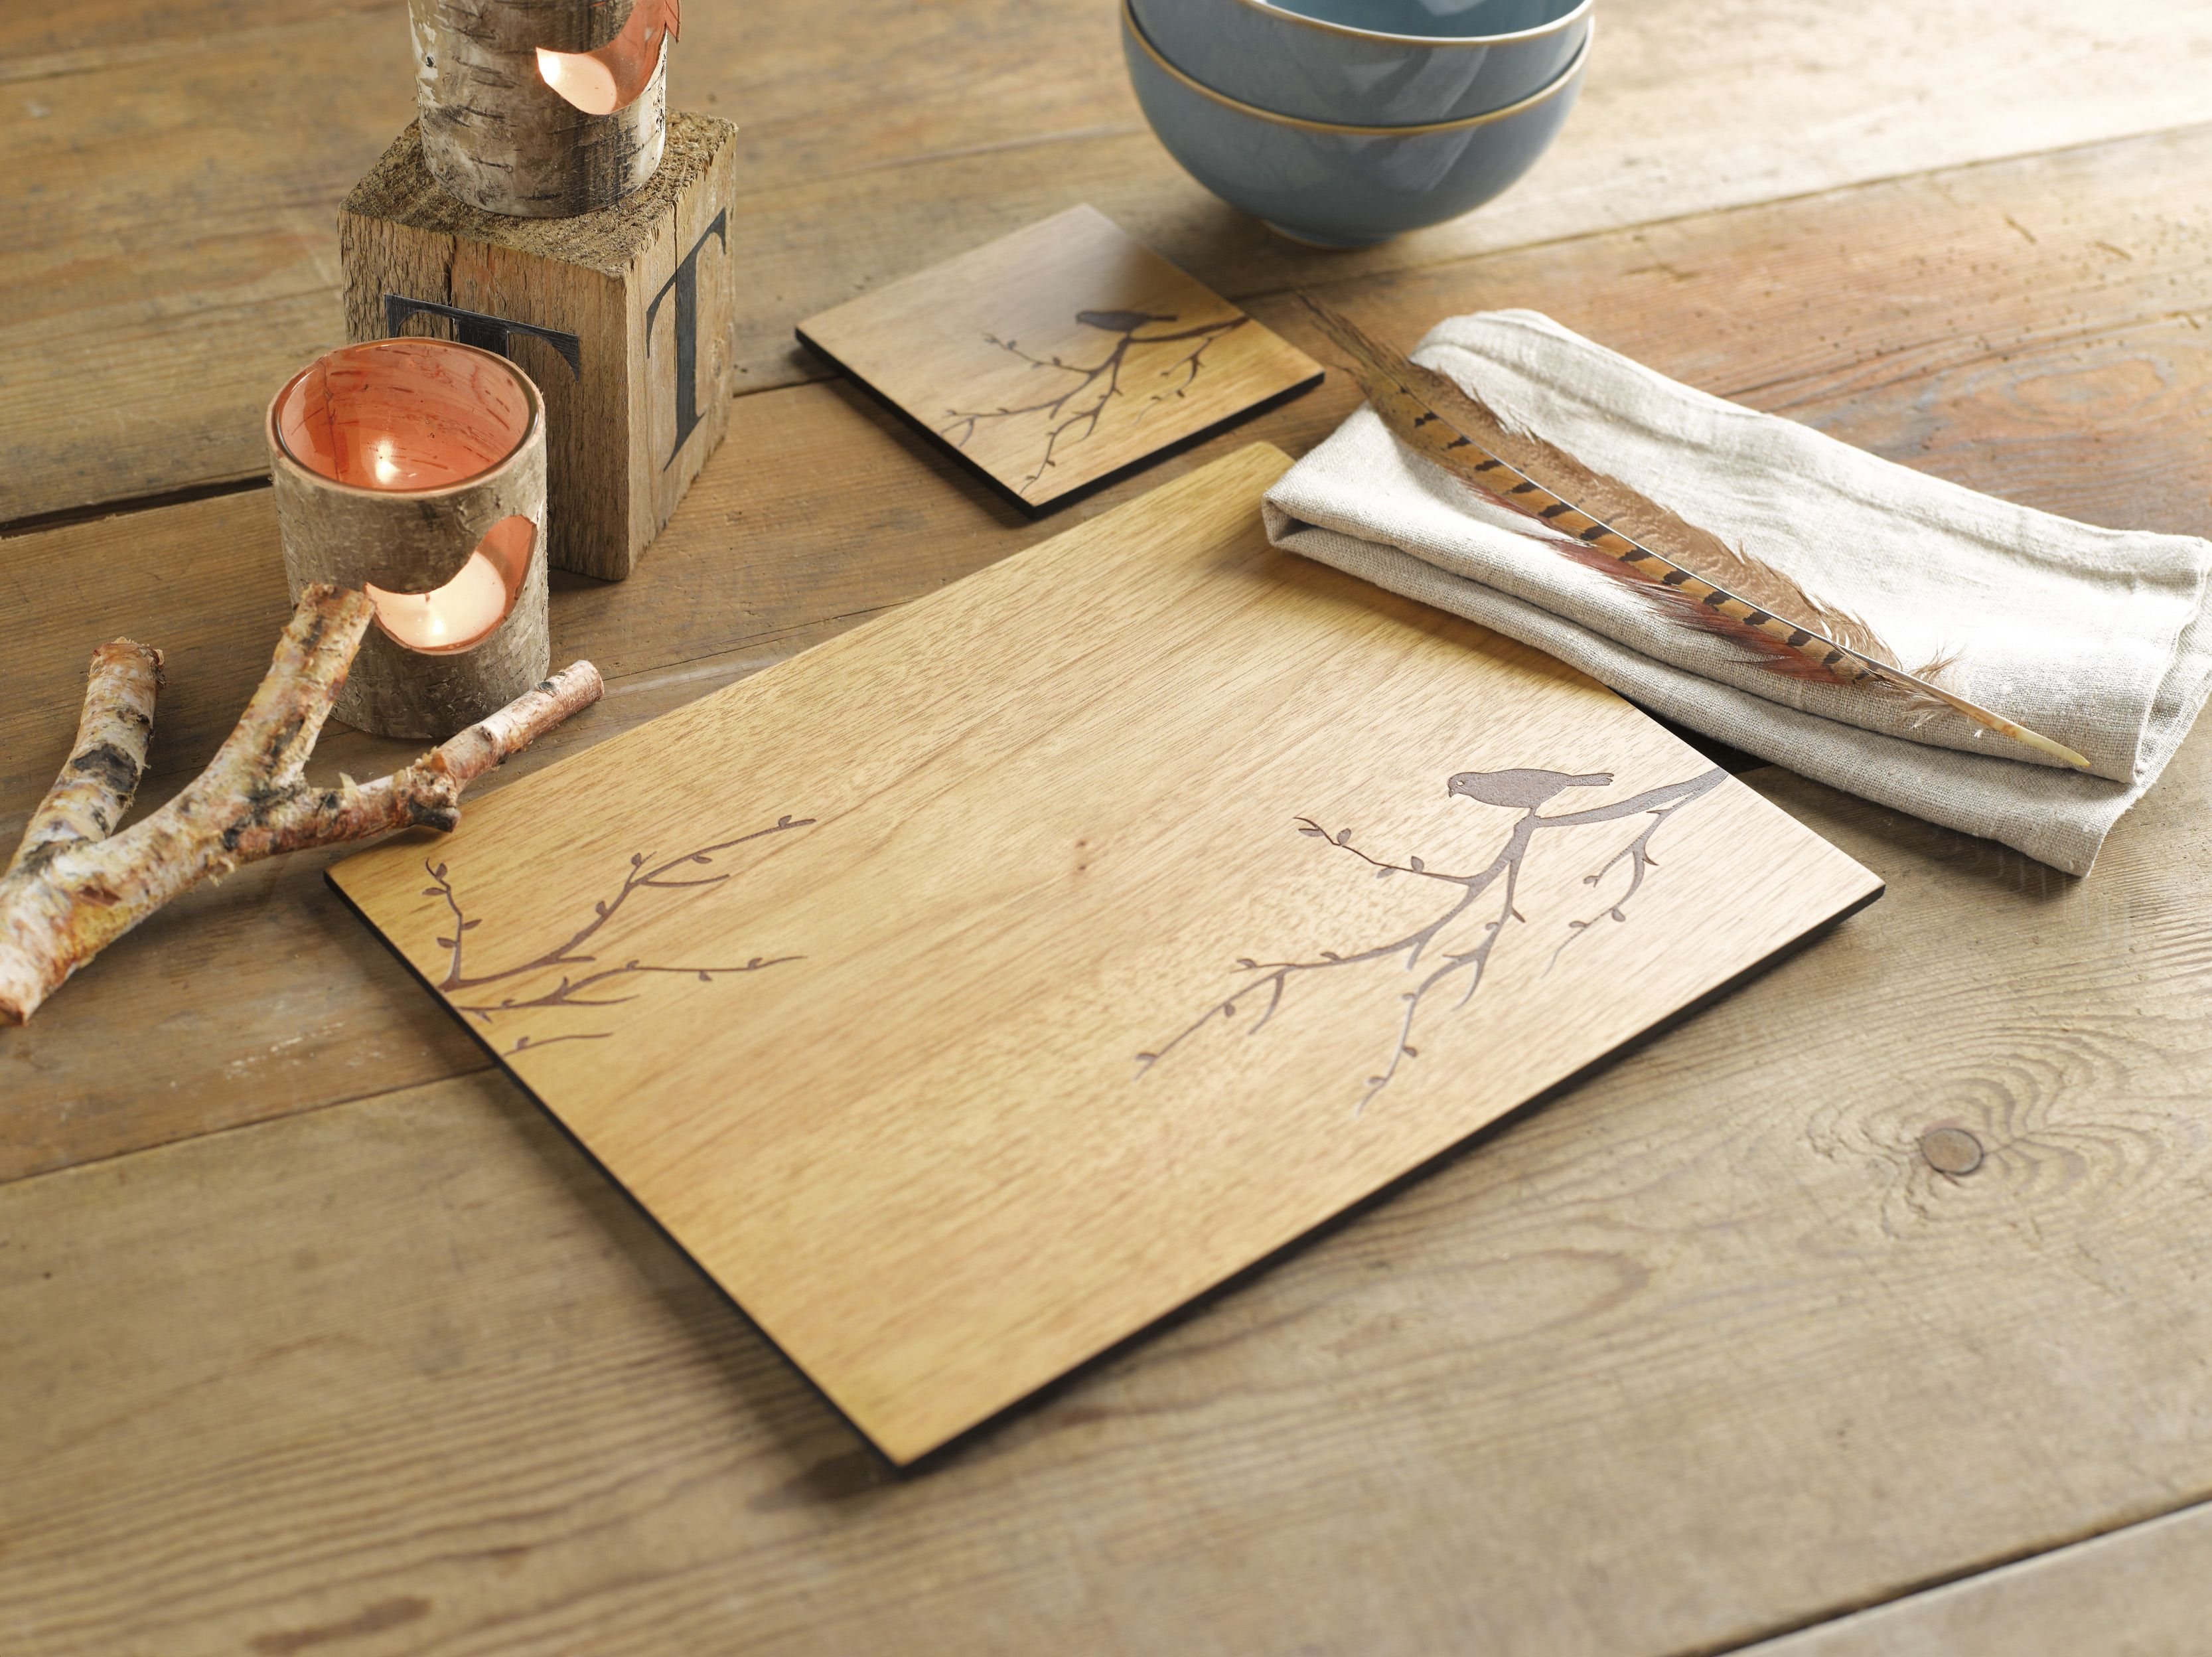 These etched wood bird placemats from Denby certainly bring a natural organic feel to the tabletop. They are made from durable wood veneer with a wipeable surface. www.denby.co.uk #tableware #placemats #denby